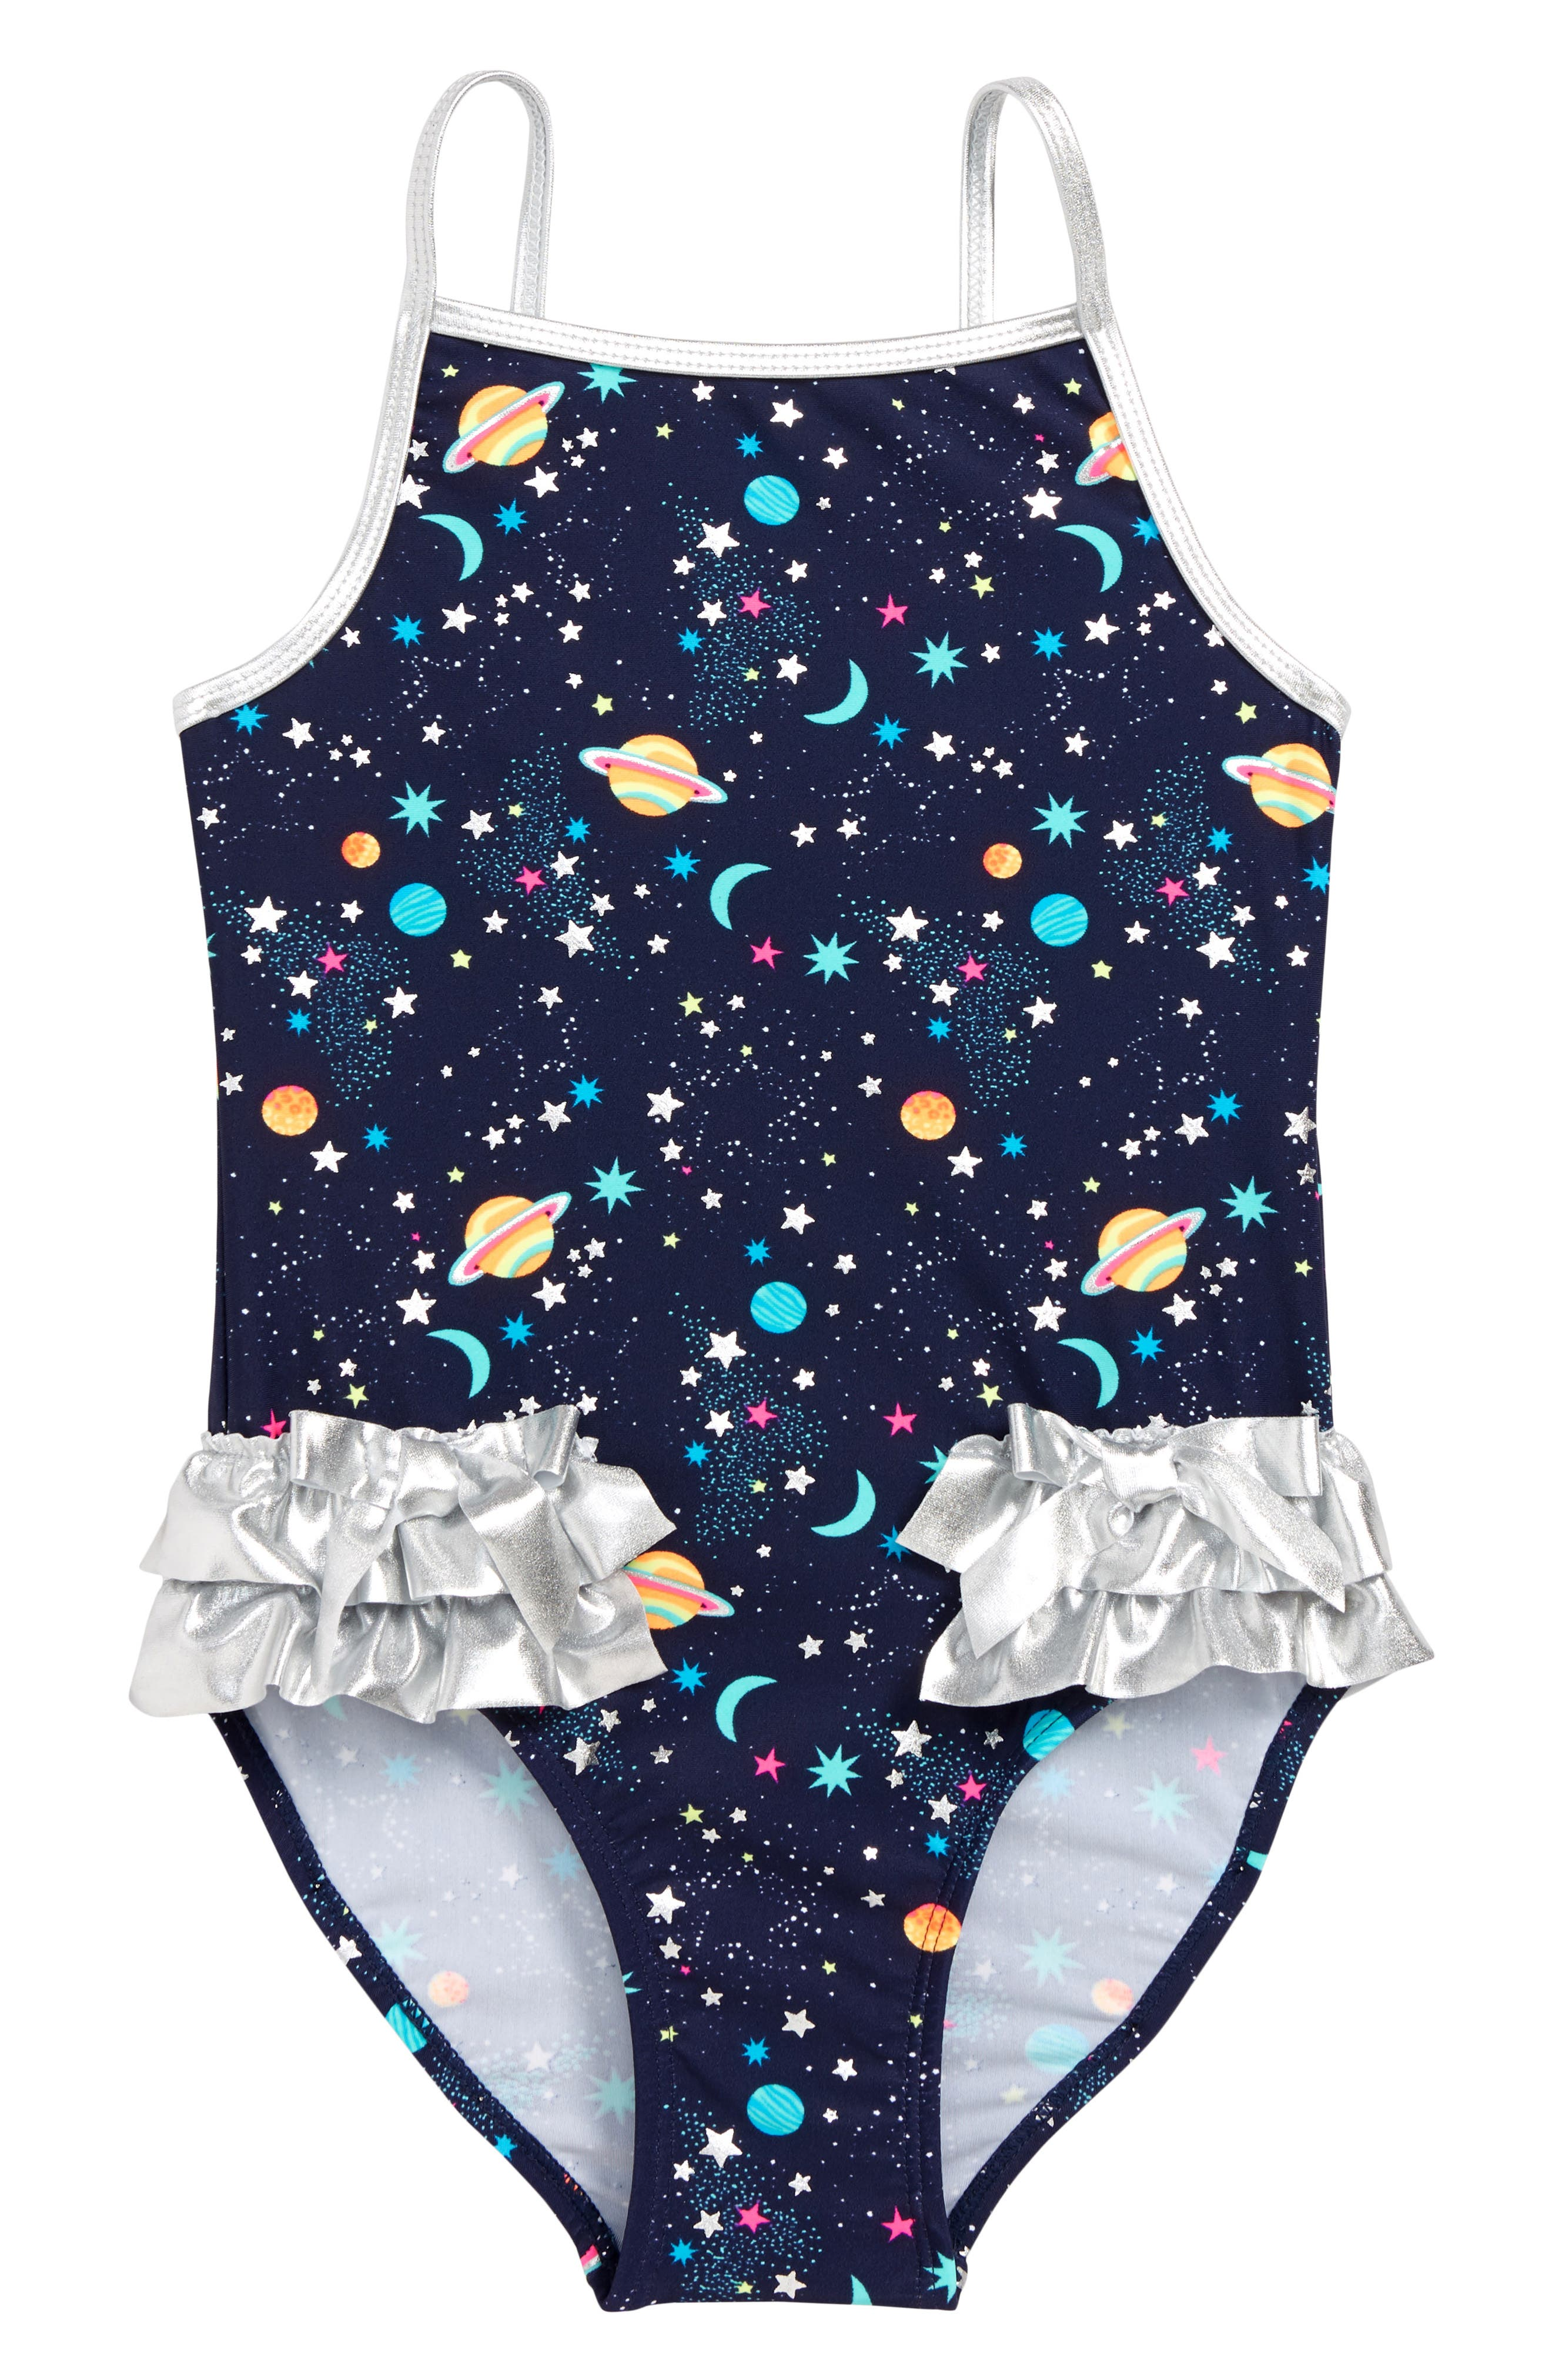 b03f8202fc1d2 Girl's Flapdoodles Galaxy One-Piece Swimsuit, Blue